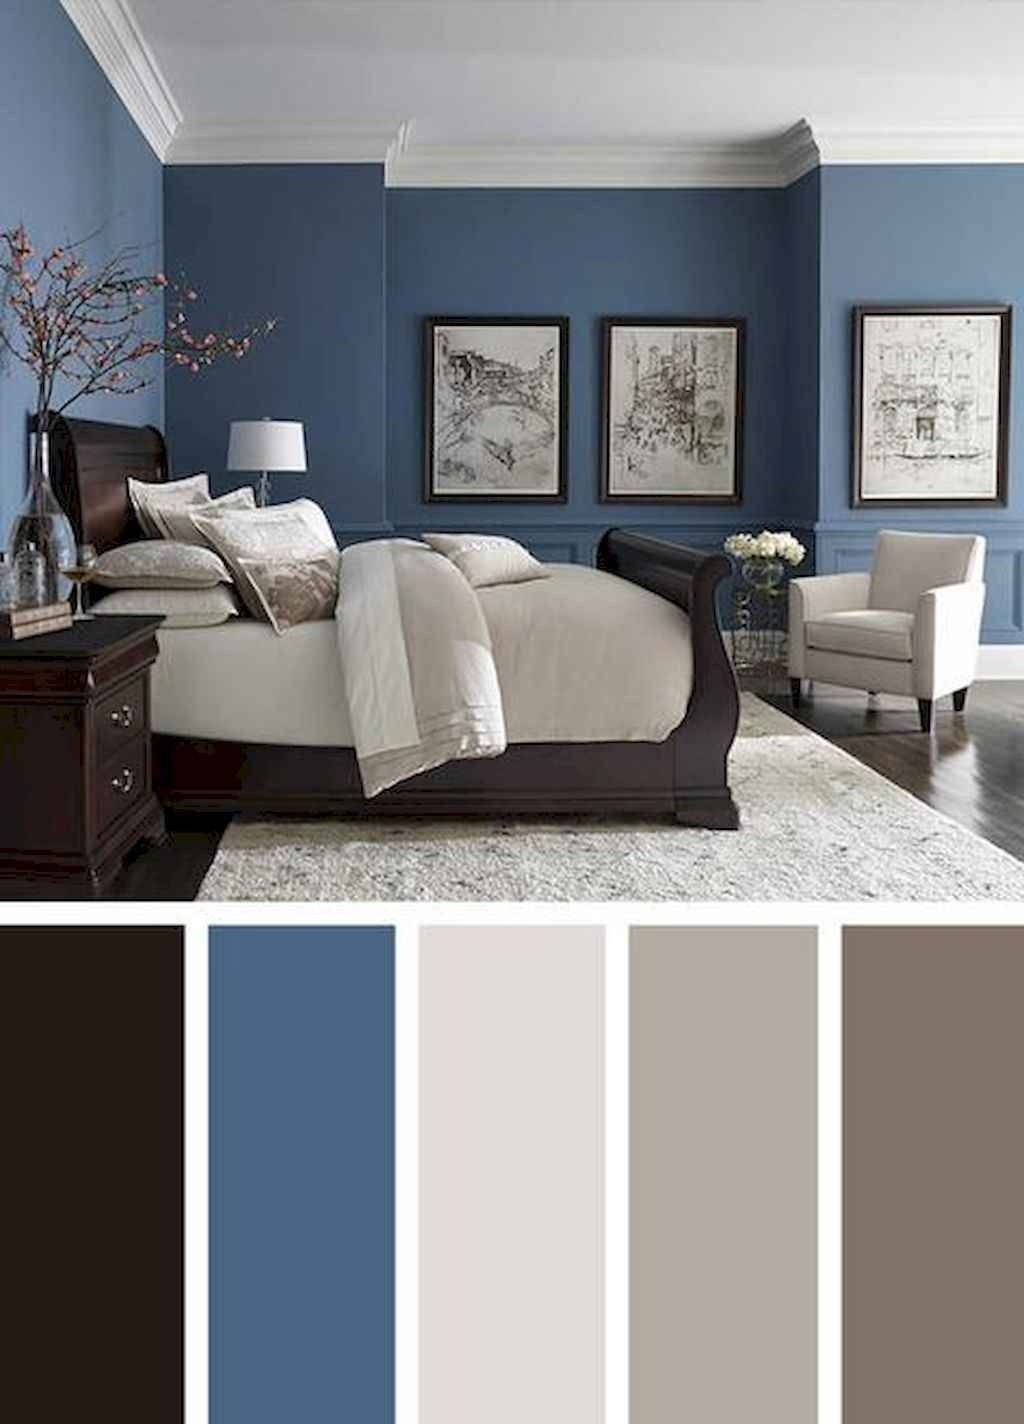 61 Simple Bedroom Decorating Ideas With Beautiful Color Browsyouroom Beautiful Bedroom Colors Bedroom Color Schemes Master Bedroom Colors Beautiful bedroom paint combination